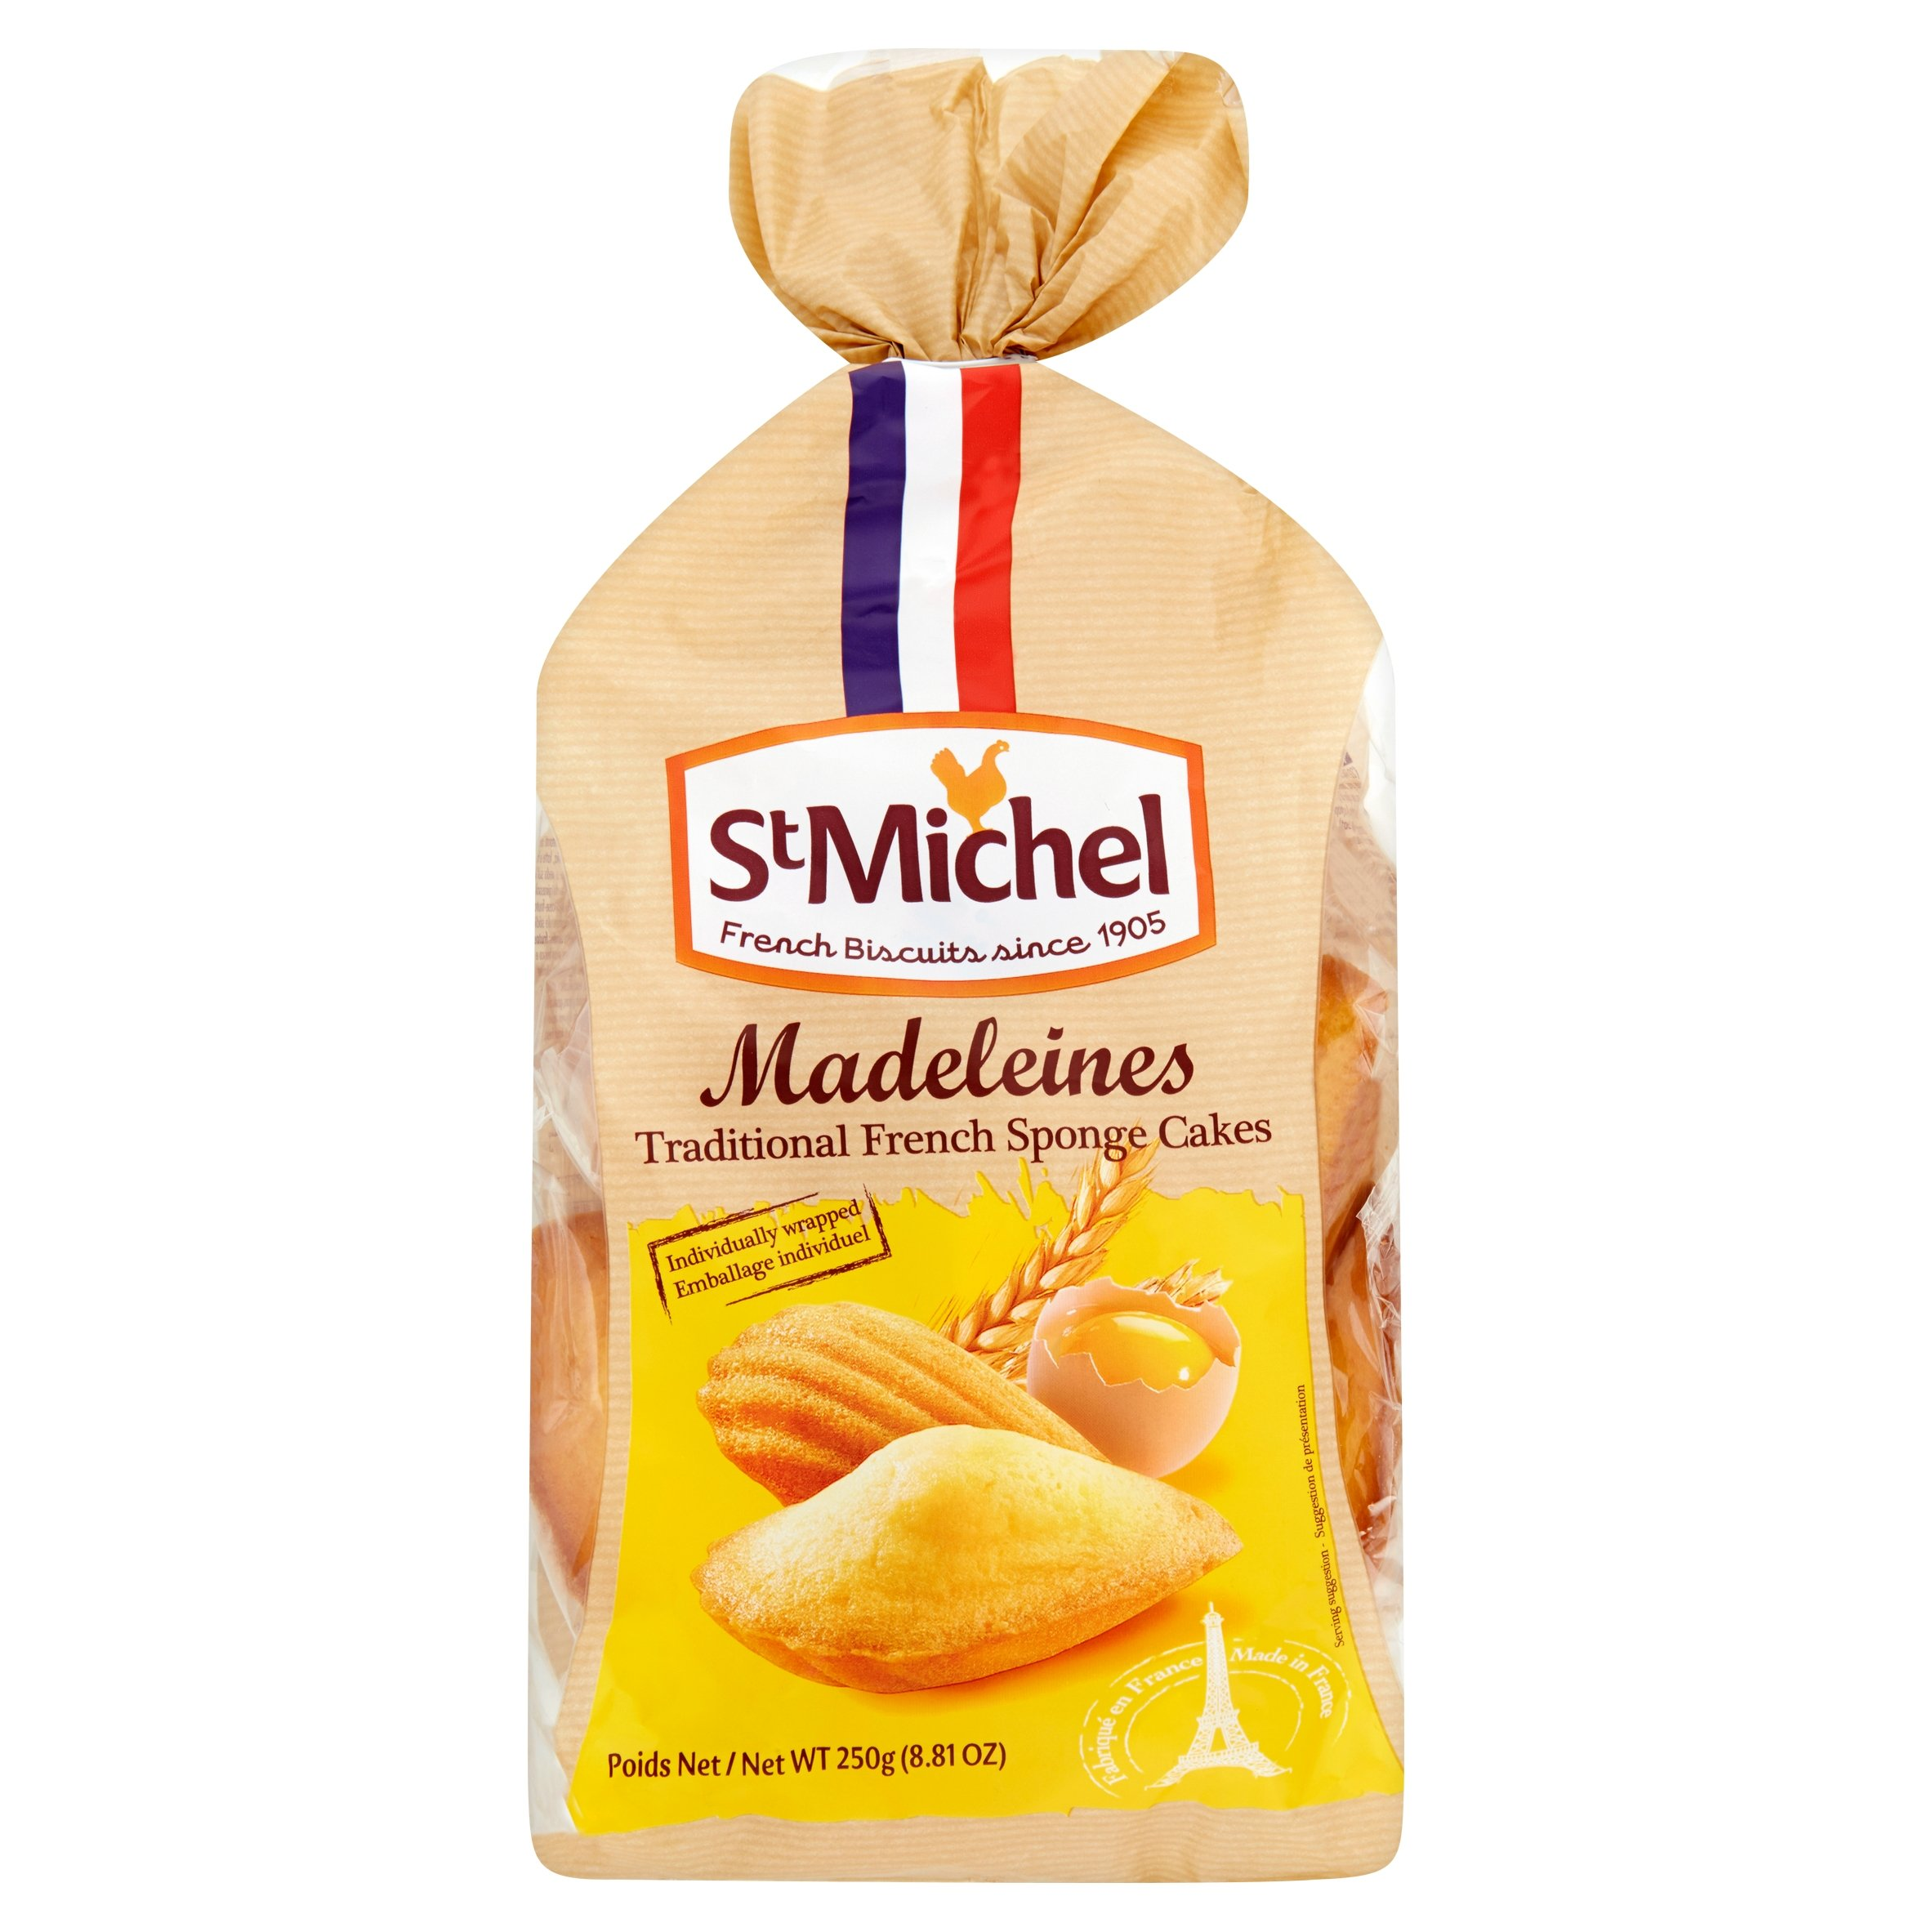 St Michel Madeleine's Traditional French Sponge Cakes, 8.8 Ounce by St Michel